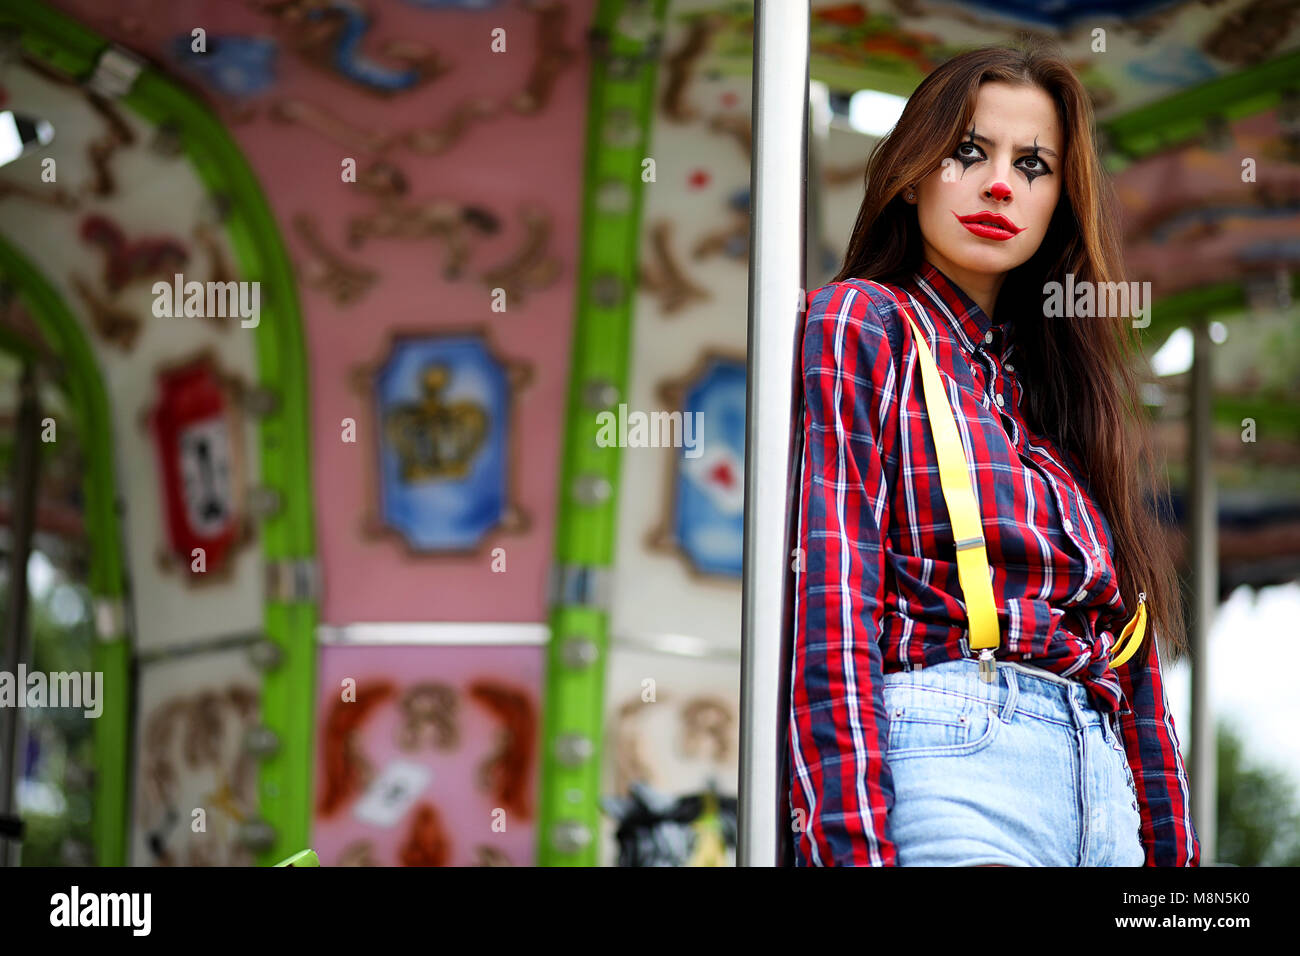 Clown Schminken Suess Süße Mädchen In Einem Clown Make Up Stockfoto Bild 177486372 Alamy